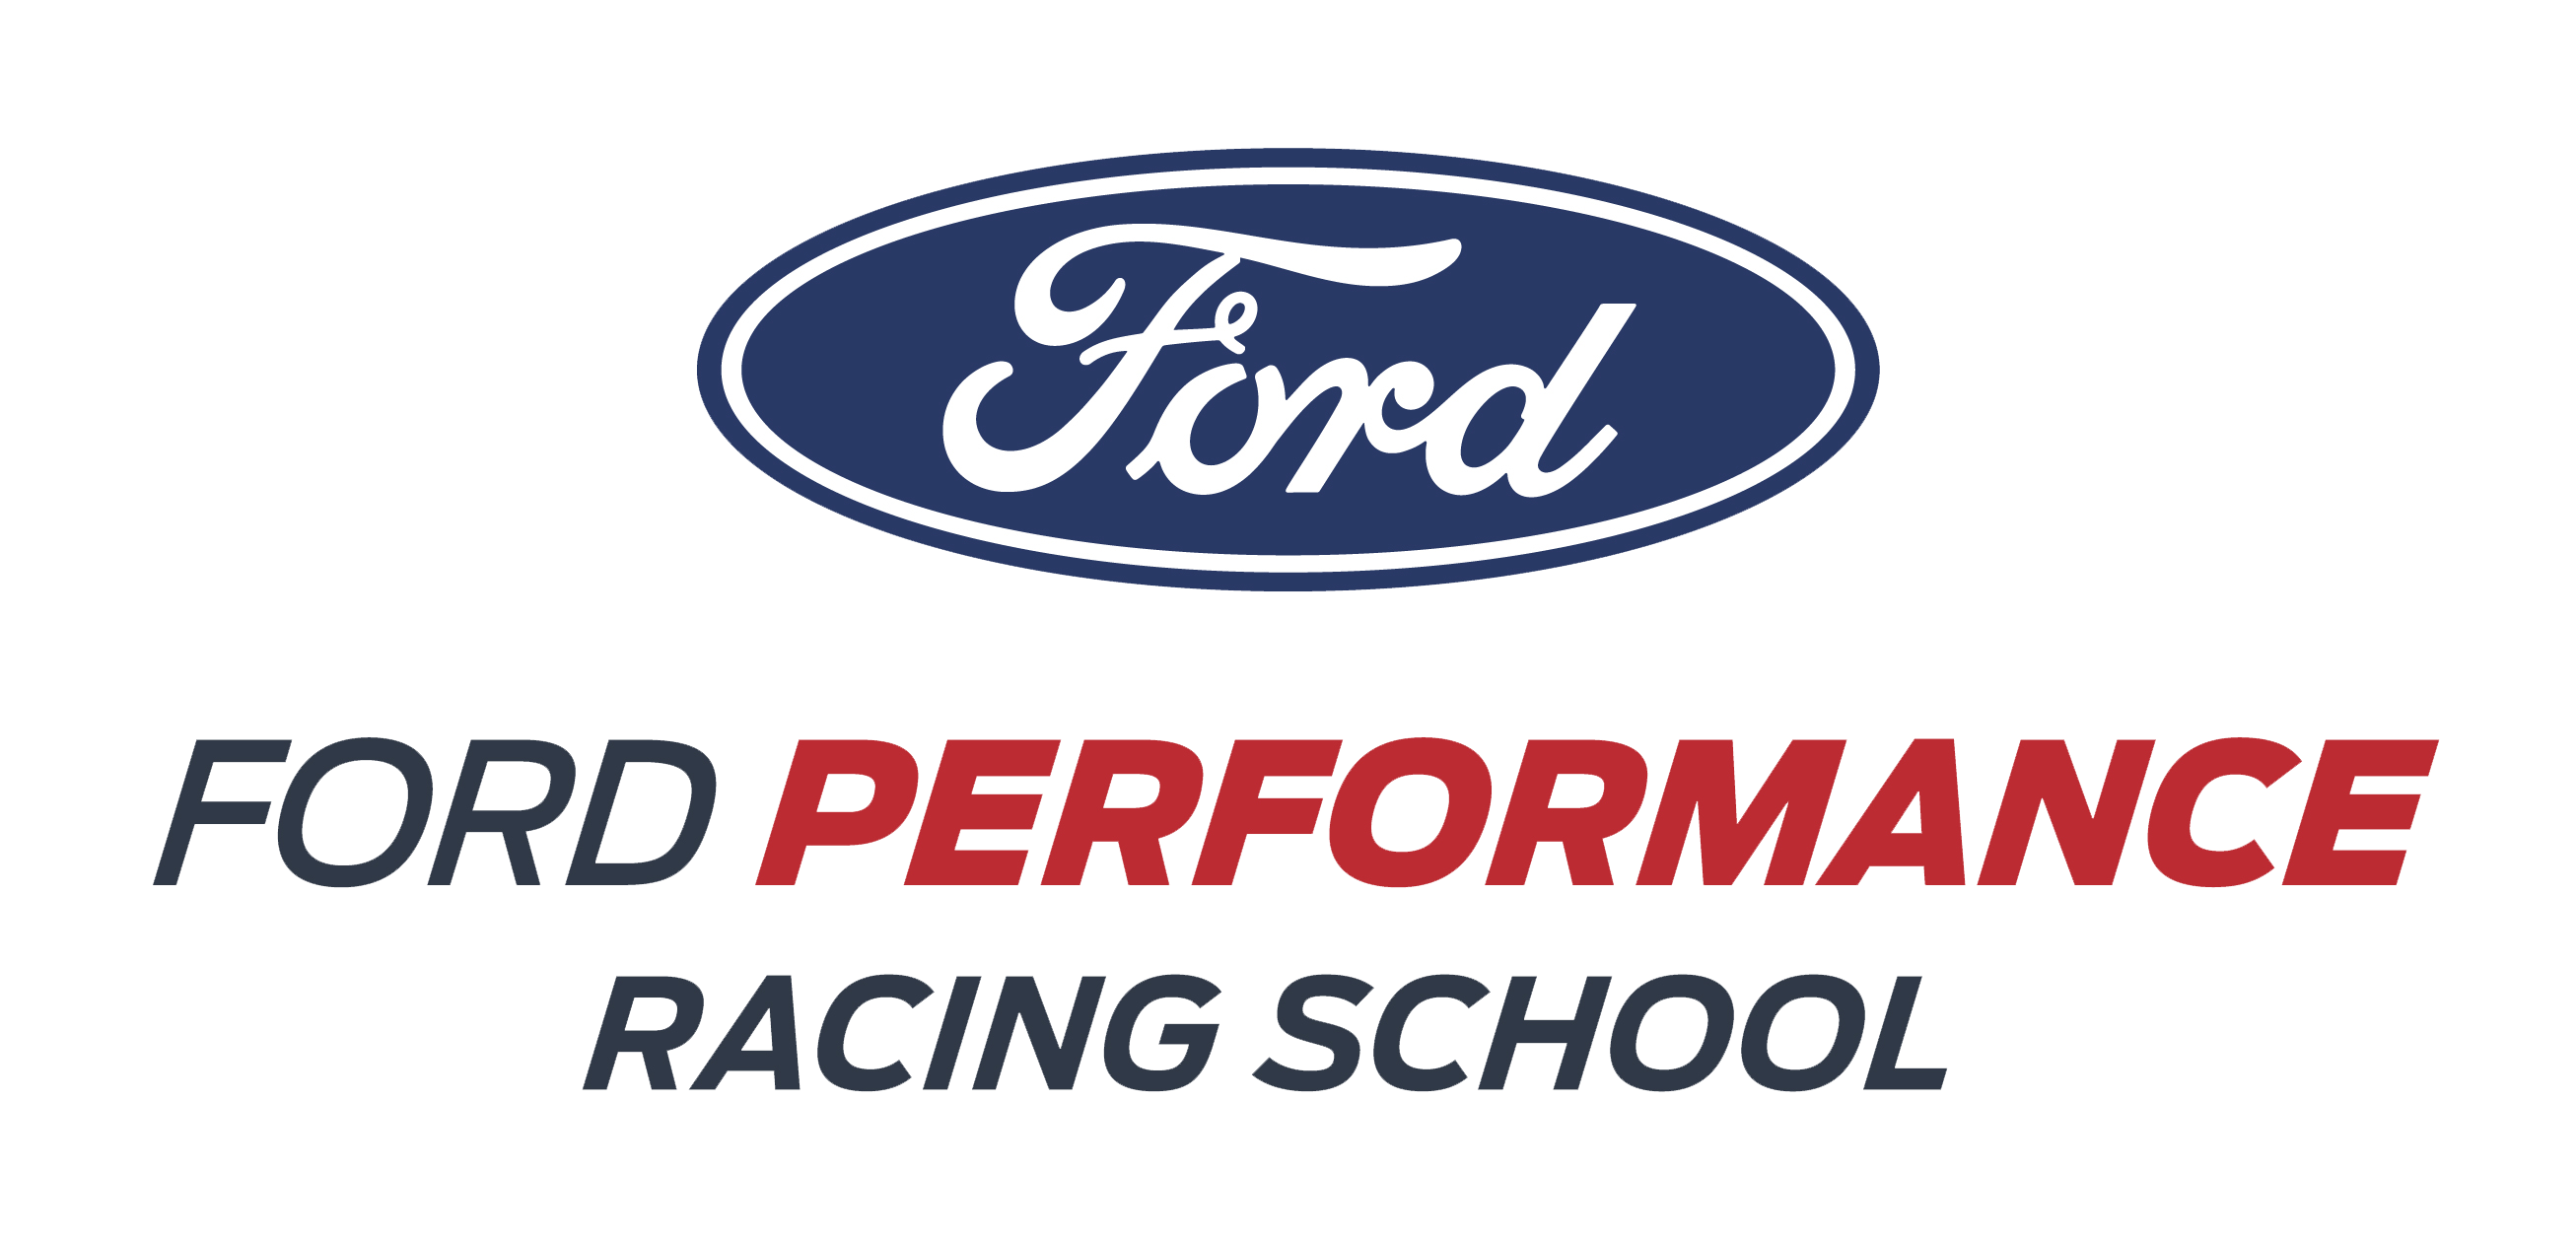 ford performance racing school white logo long